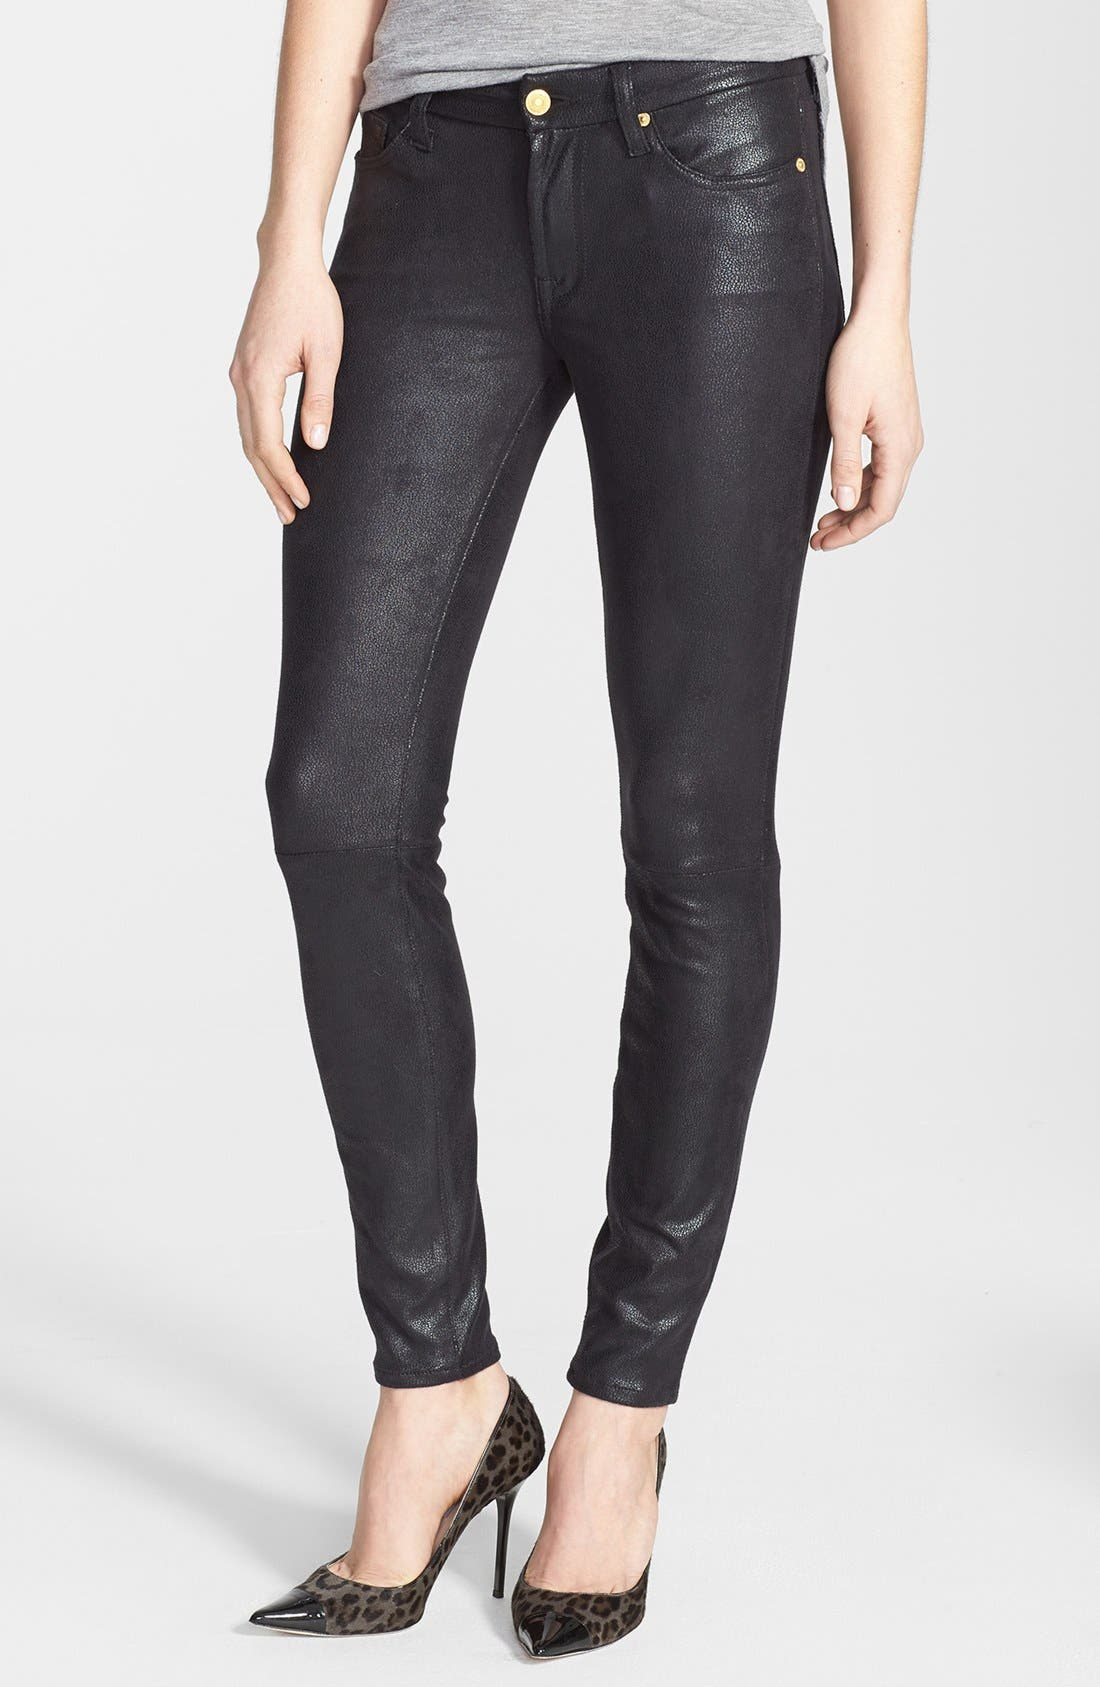 Main Image - 7 For All Mankind® 'The Skinny' High Rise Faux Leather Skinny Pants (Black)